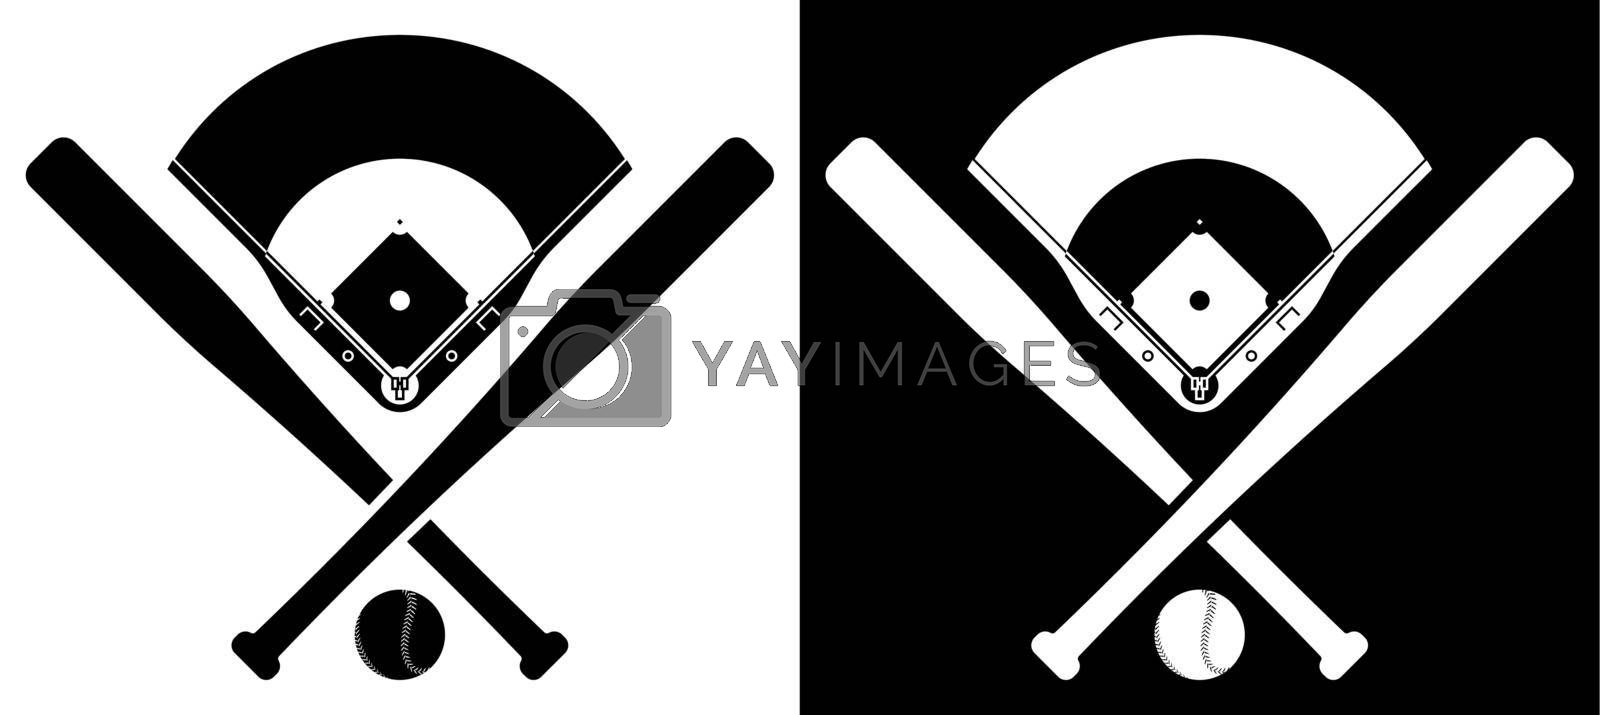 Royalty free image of crossed sports baseball bats with ball and silhouette of baseball stadium. American national sport. Active lifestyle. Realistic vector by RNko